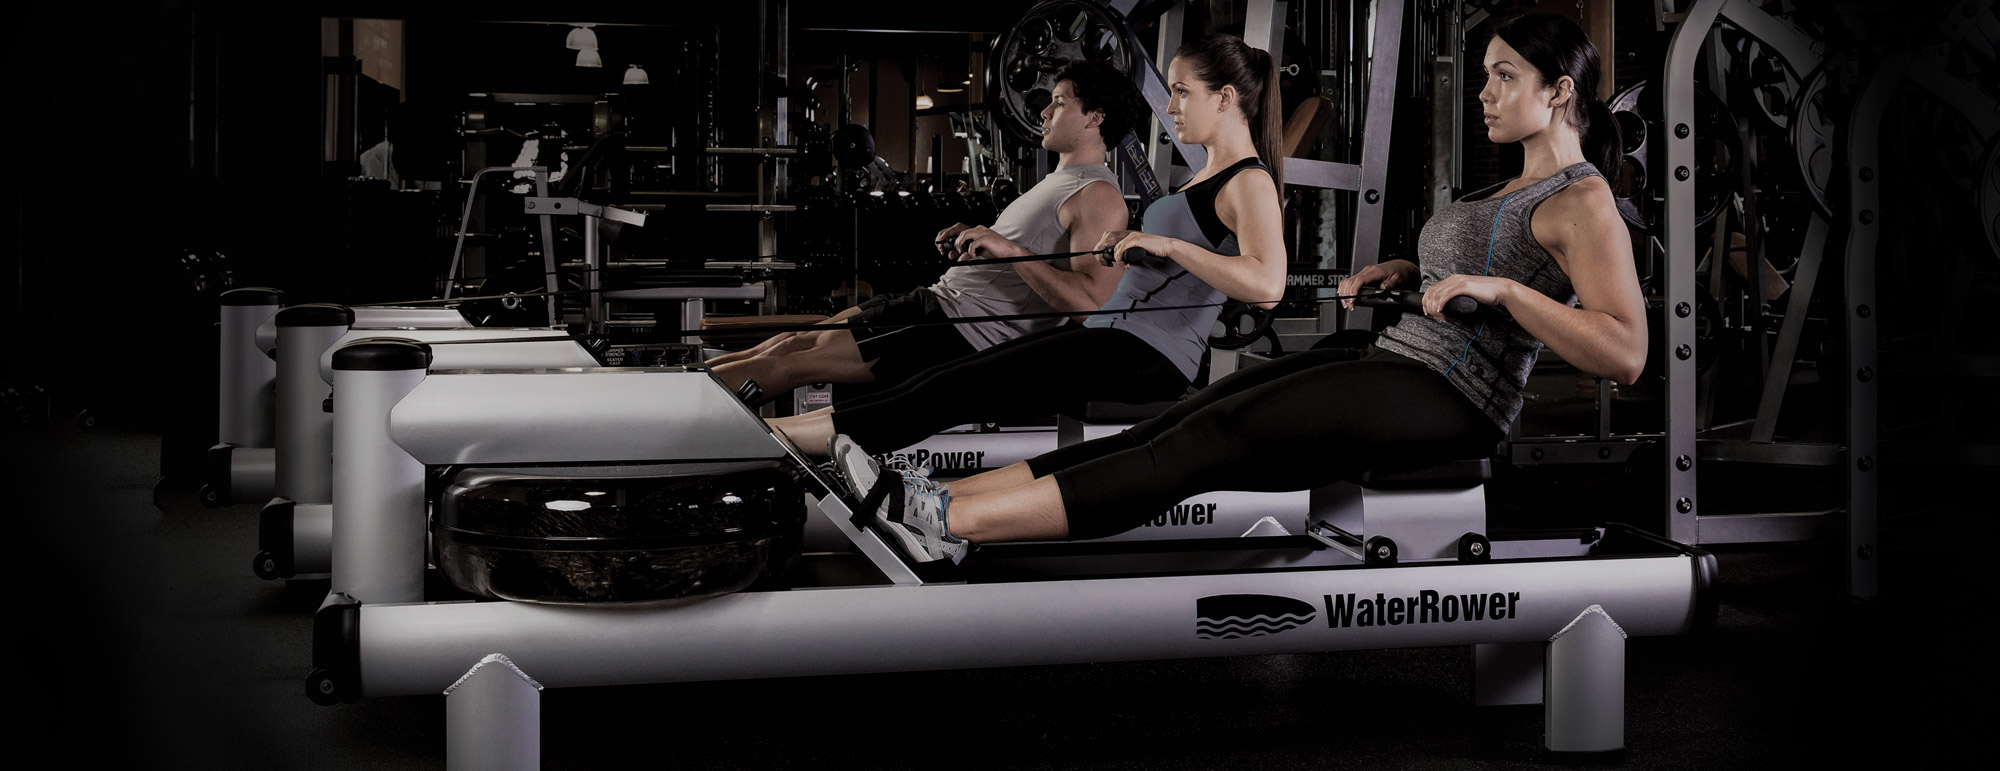 remadora-uso-comercial-waterrower